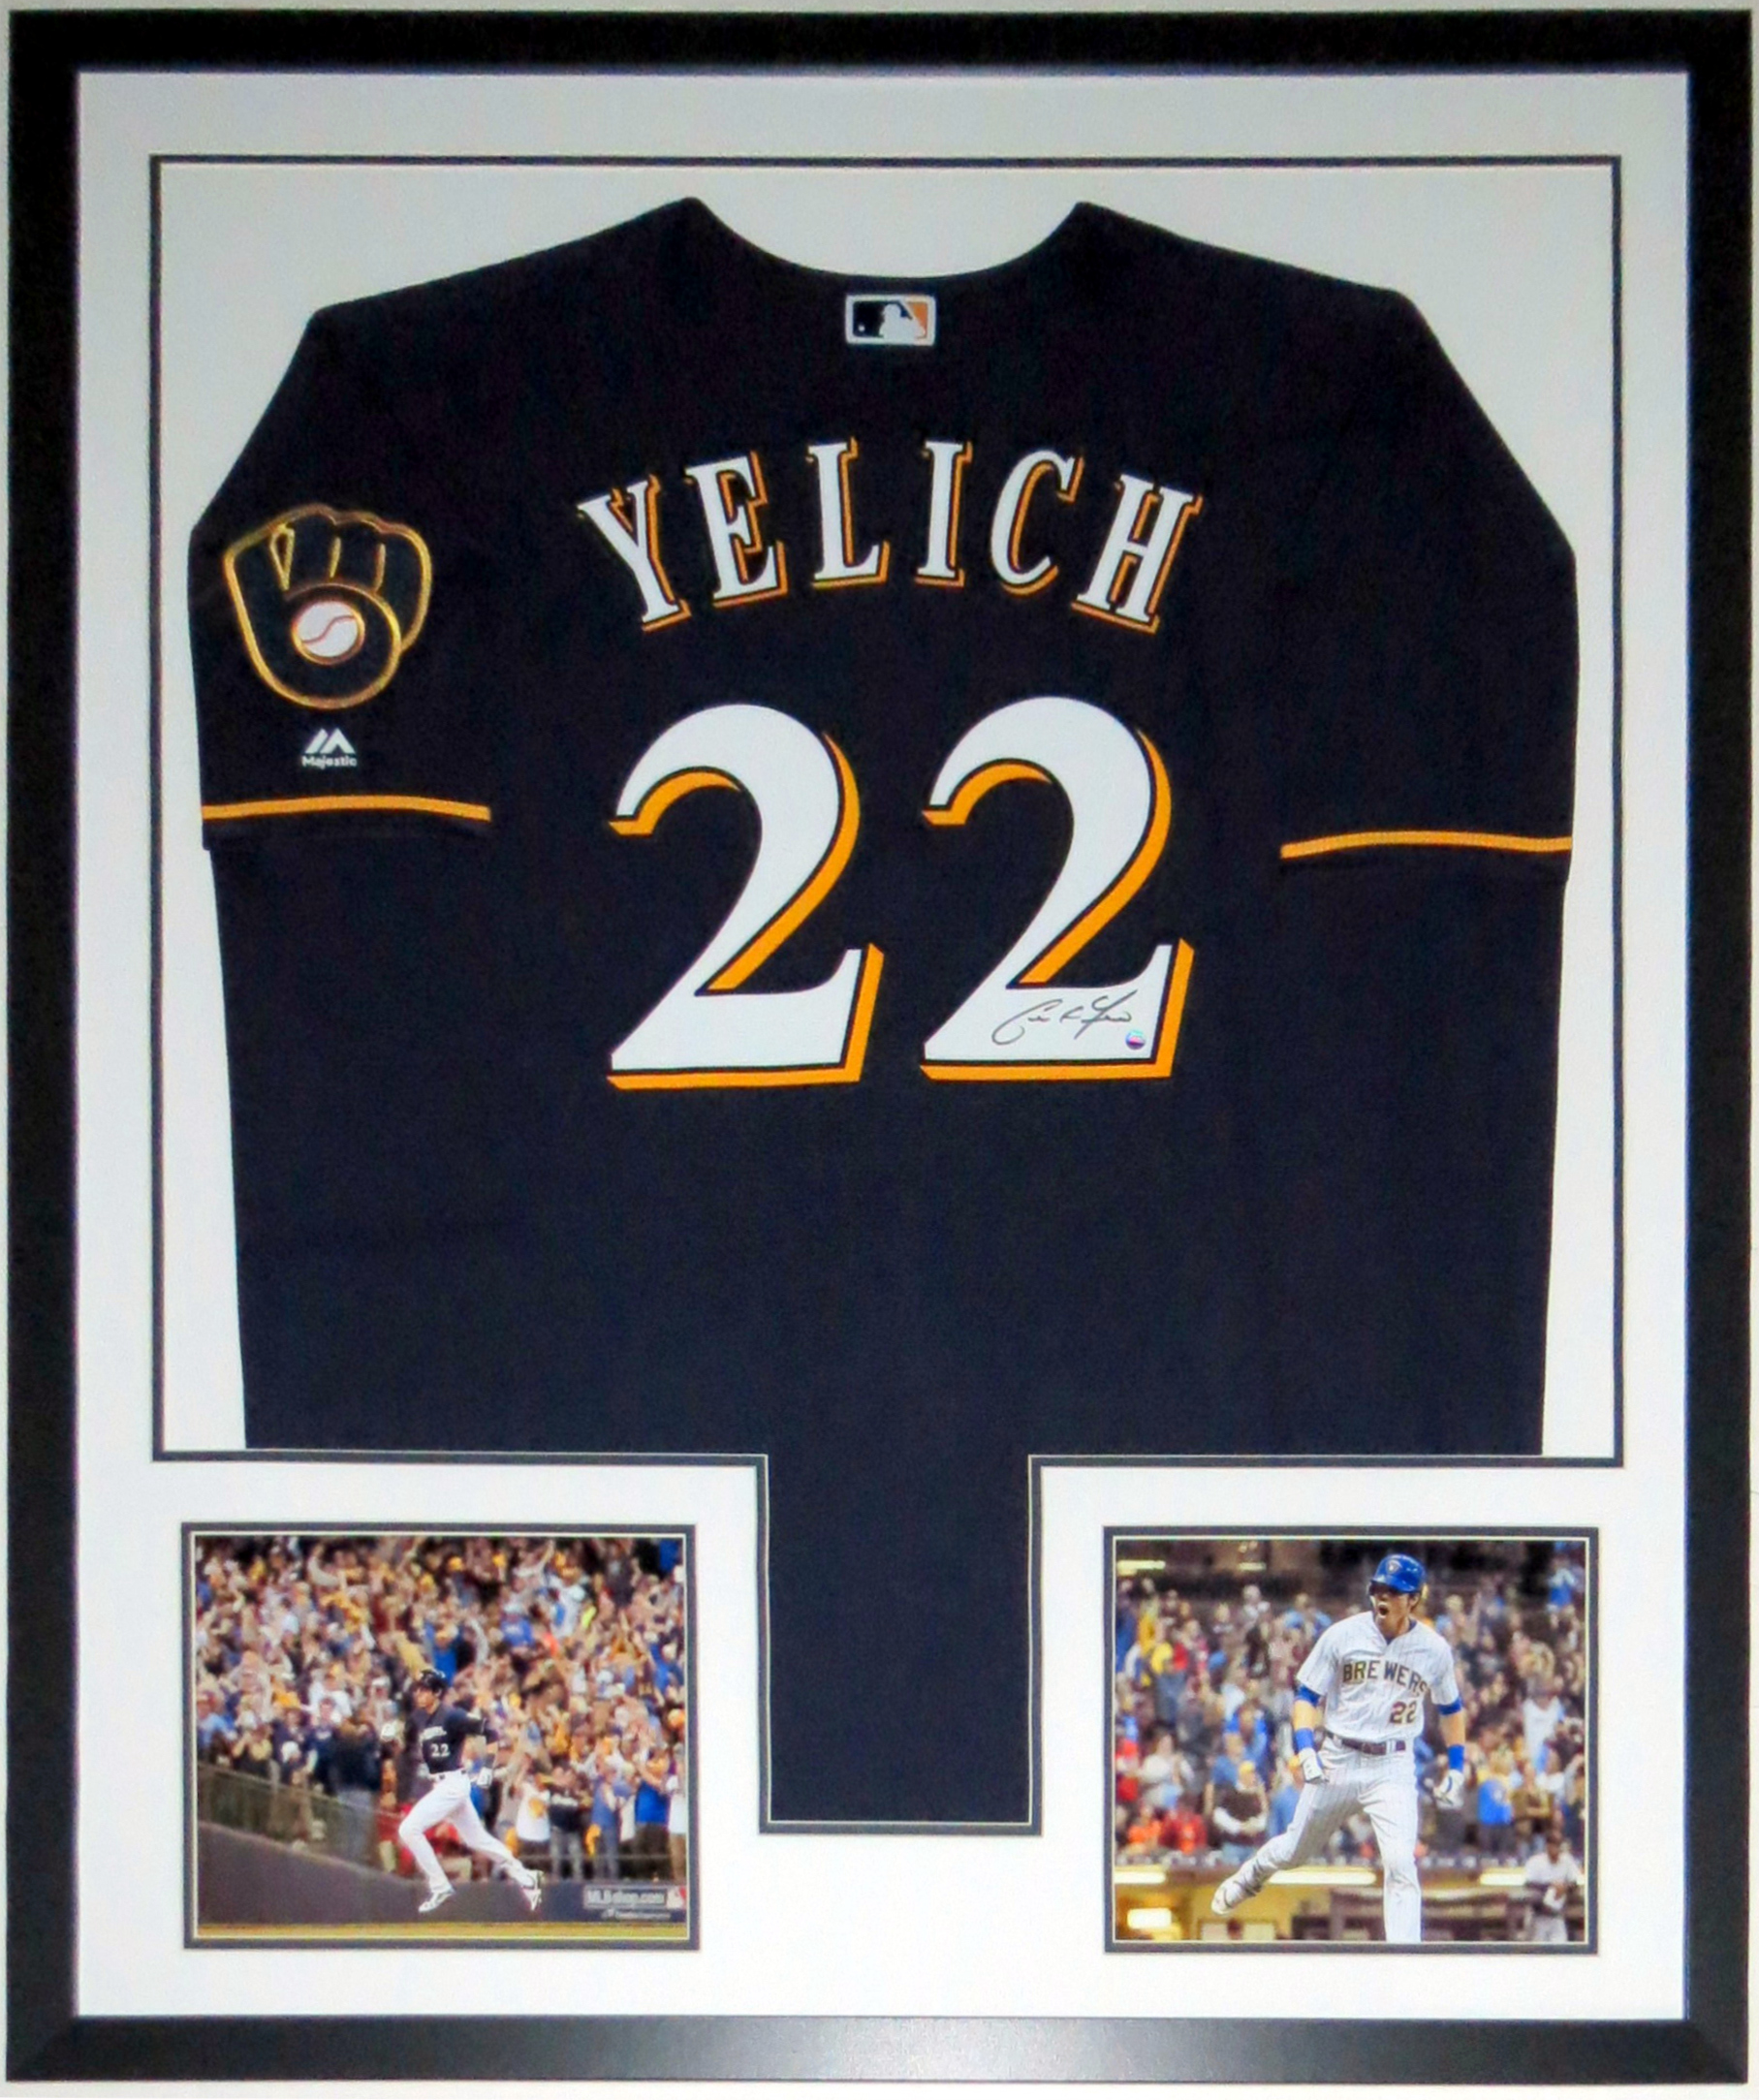 Christian Yelich Signed 2018 Milwaukee Brewers Jersey - Steiner Sports COA Authenticated - Professionally Framed & 8x10 Photo